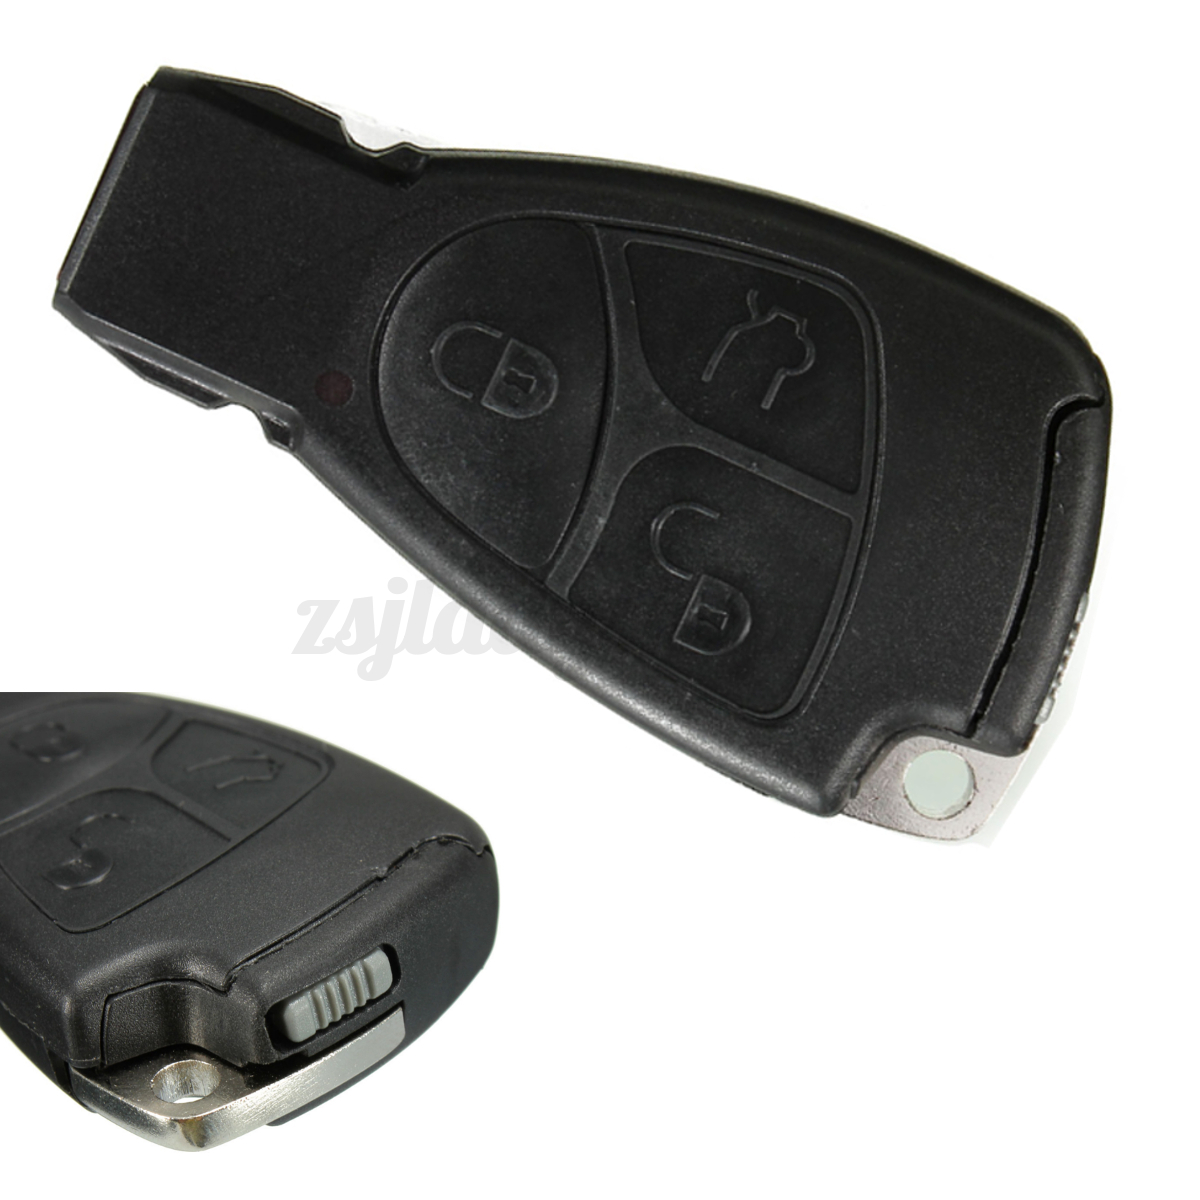 3 button key remote fob case for mercedes benz c ml e clk for Mercedes benz key fob battery size